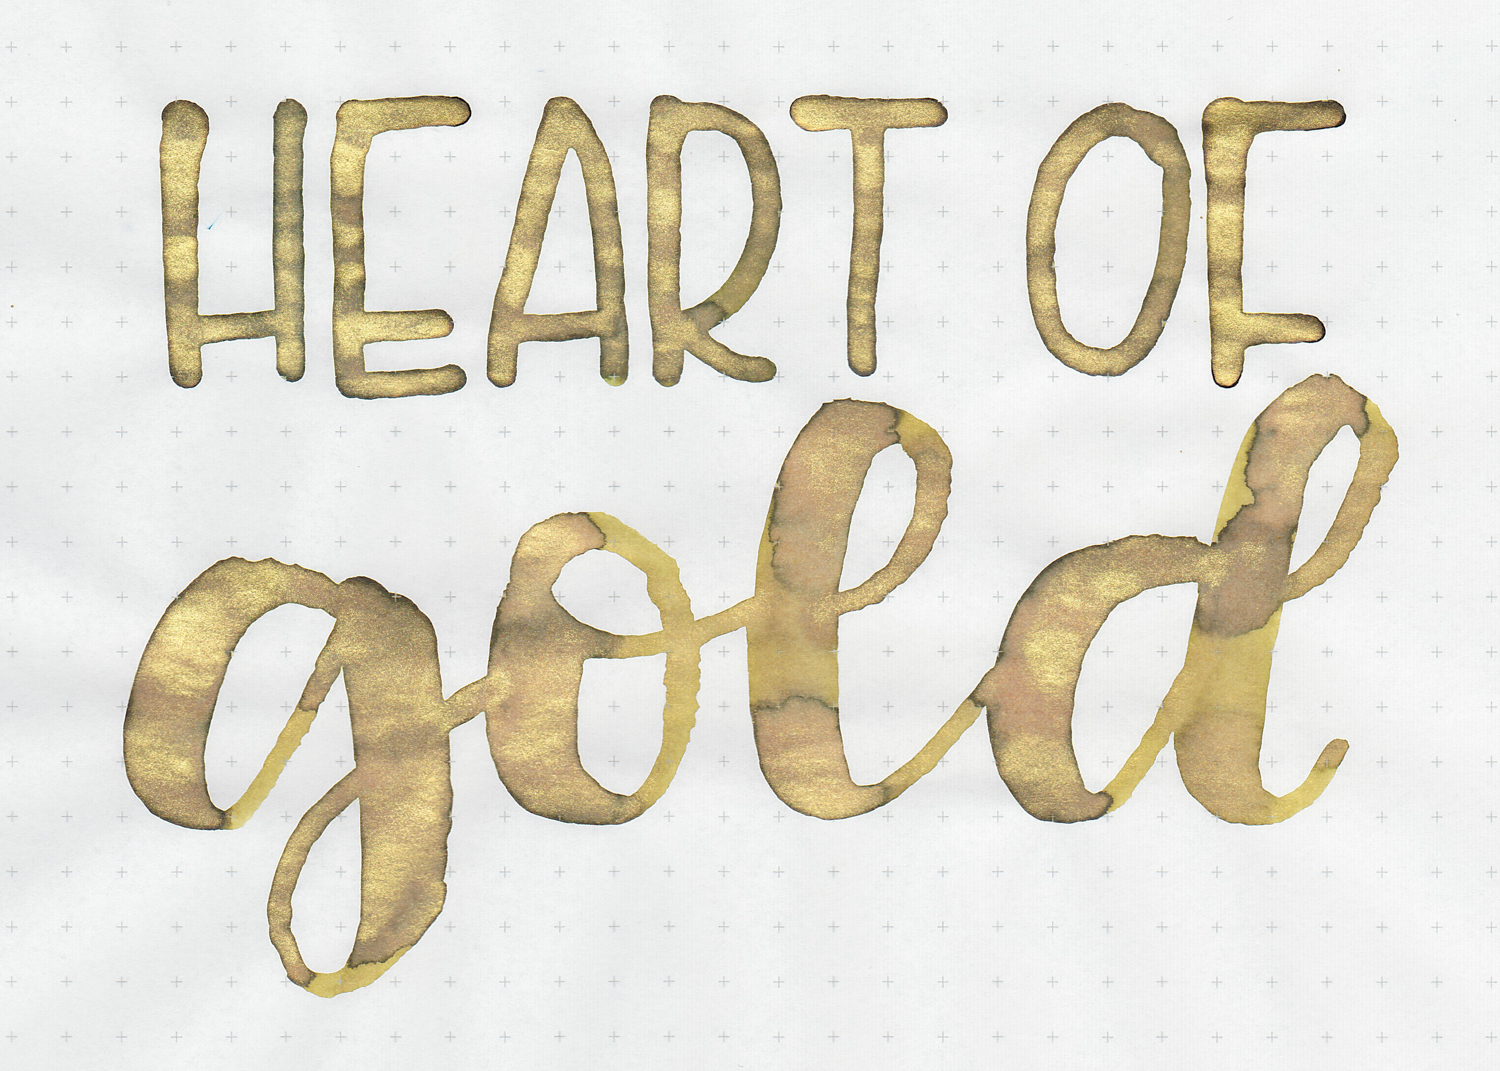 ro-heart-of-gold-3.jpg